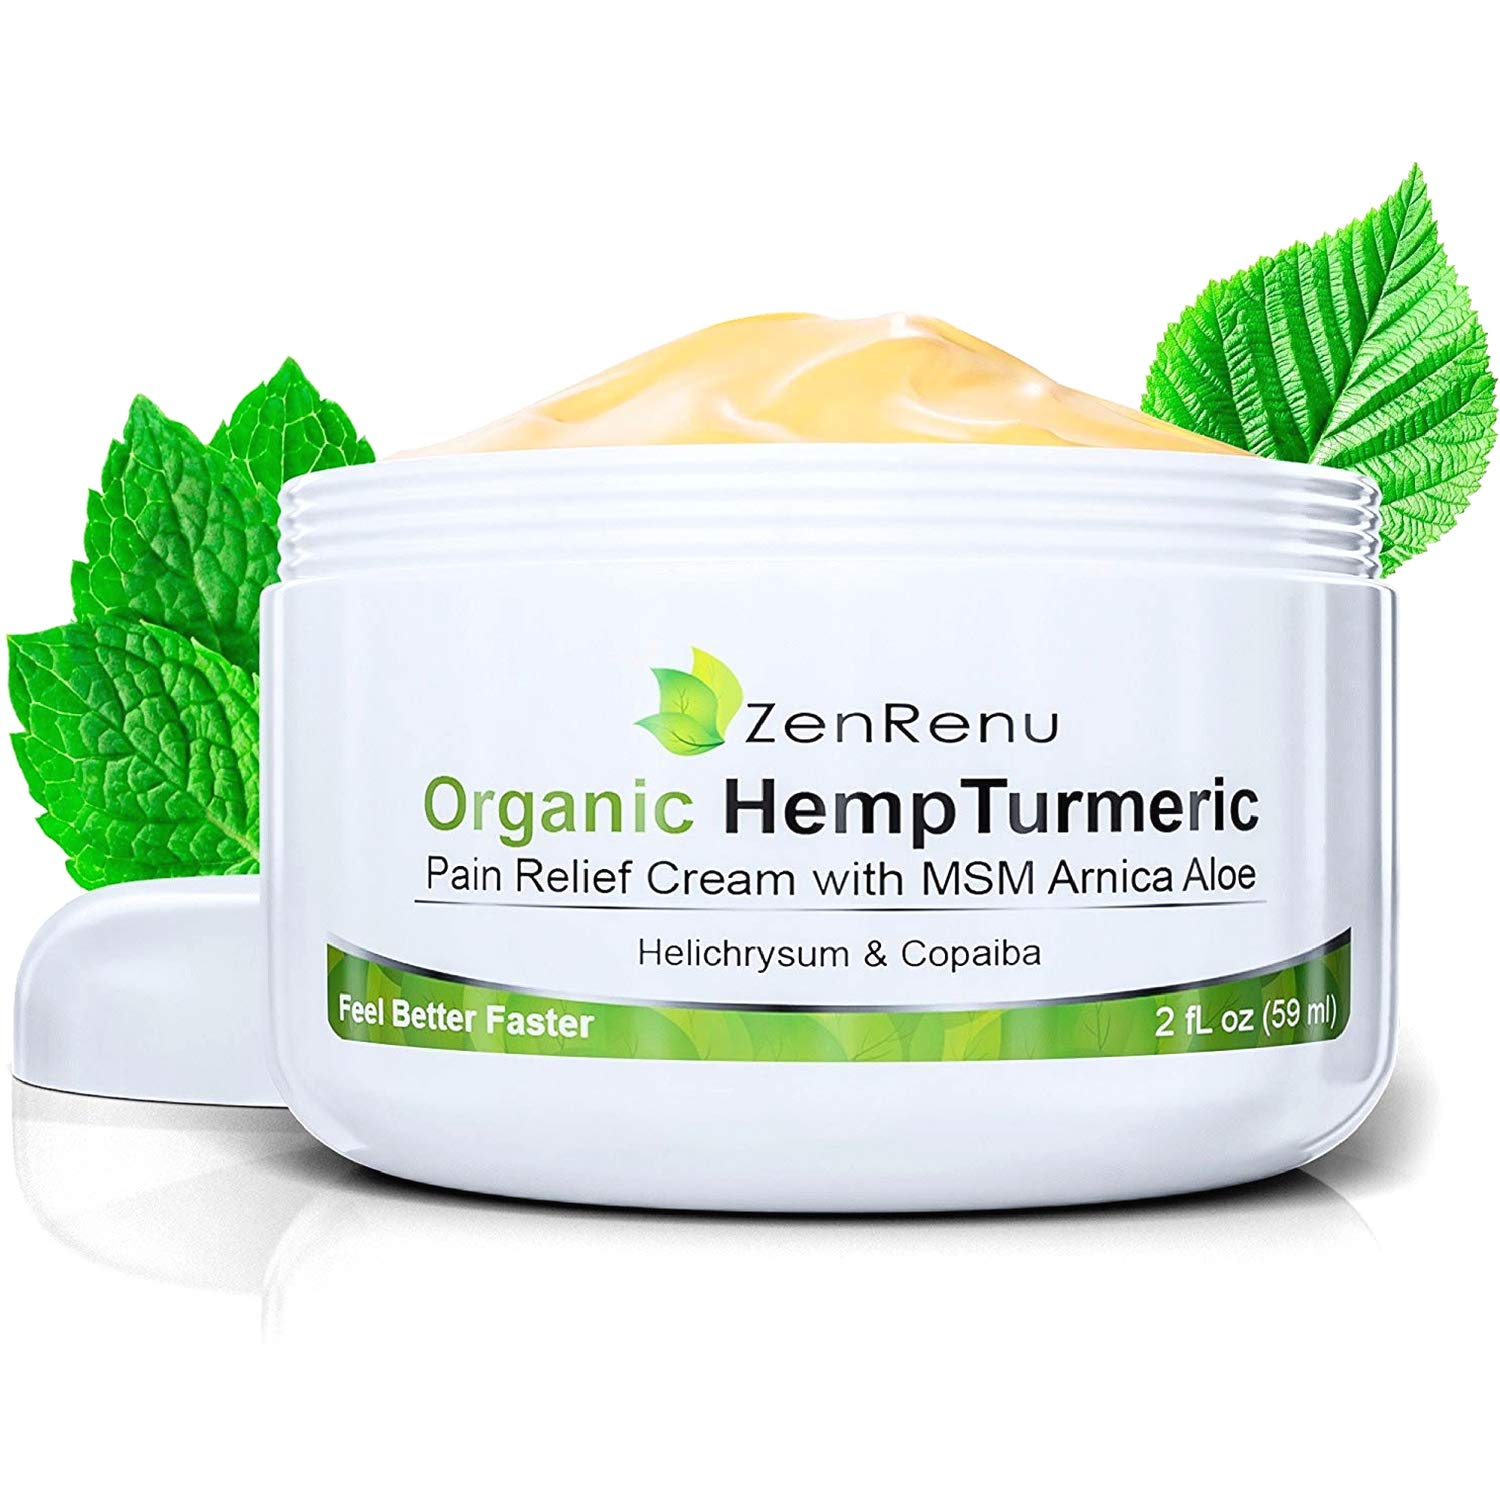 Organic Hemp Pain Relief Cream by ZenRenu | MSM Turmeric Arnica, | Relieve Muscle, Joint & Arthritis Pain | Effective Hemp Oil Extract Pain Cream | Fibromyalgia & Carpal Tunnel Relief